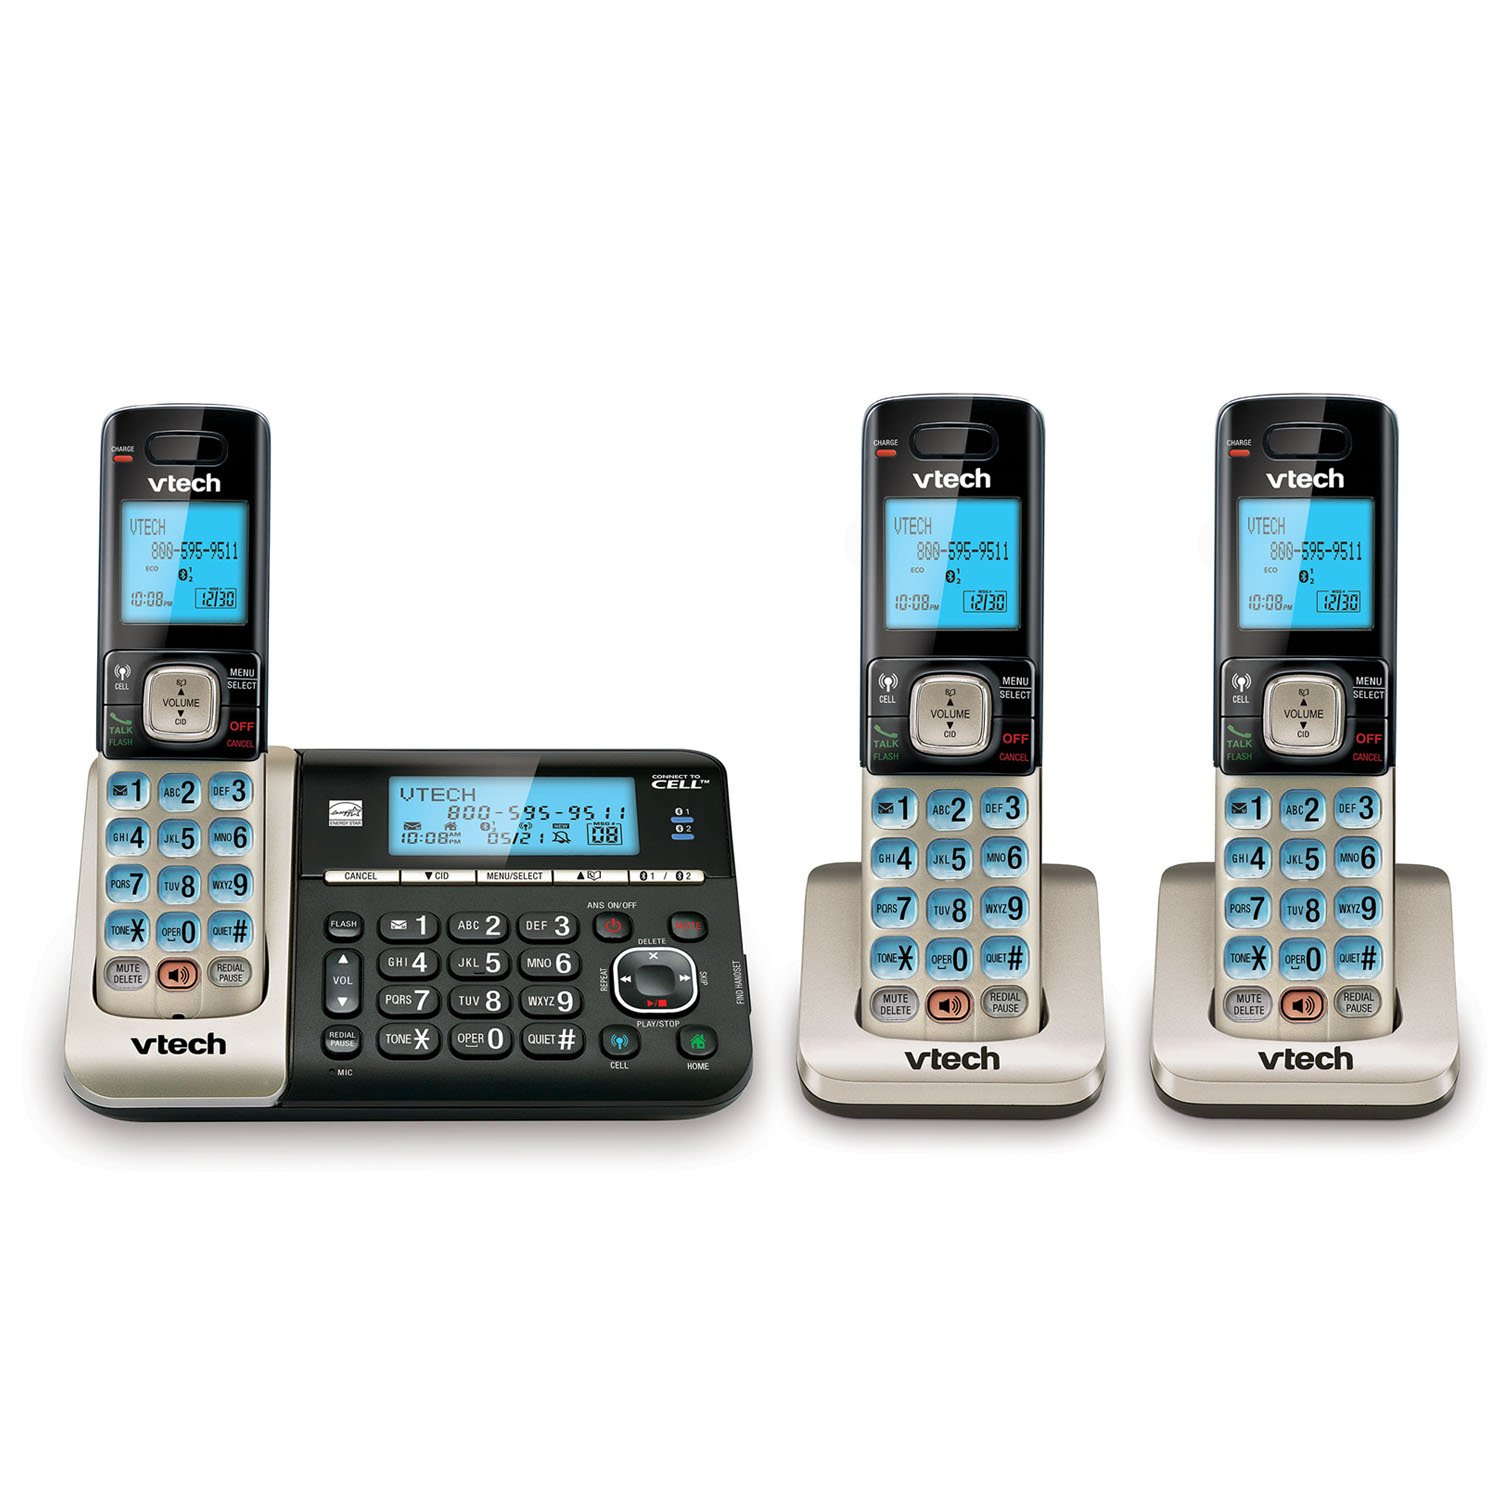 VTech DS6751-3 3-Handset DECT 6.0 Cordless Phone with Bluetooth Connect to Cell, Digital Answering System and Caller ID, Expandable up to 5 Handsets, Wall-Mountable, Silver/Black